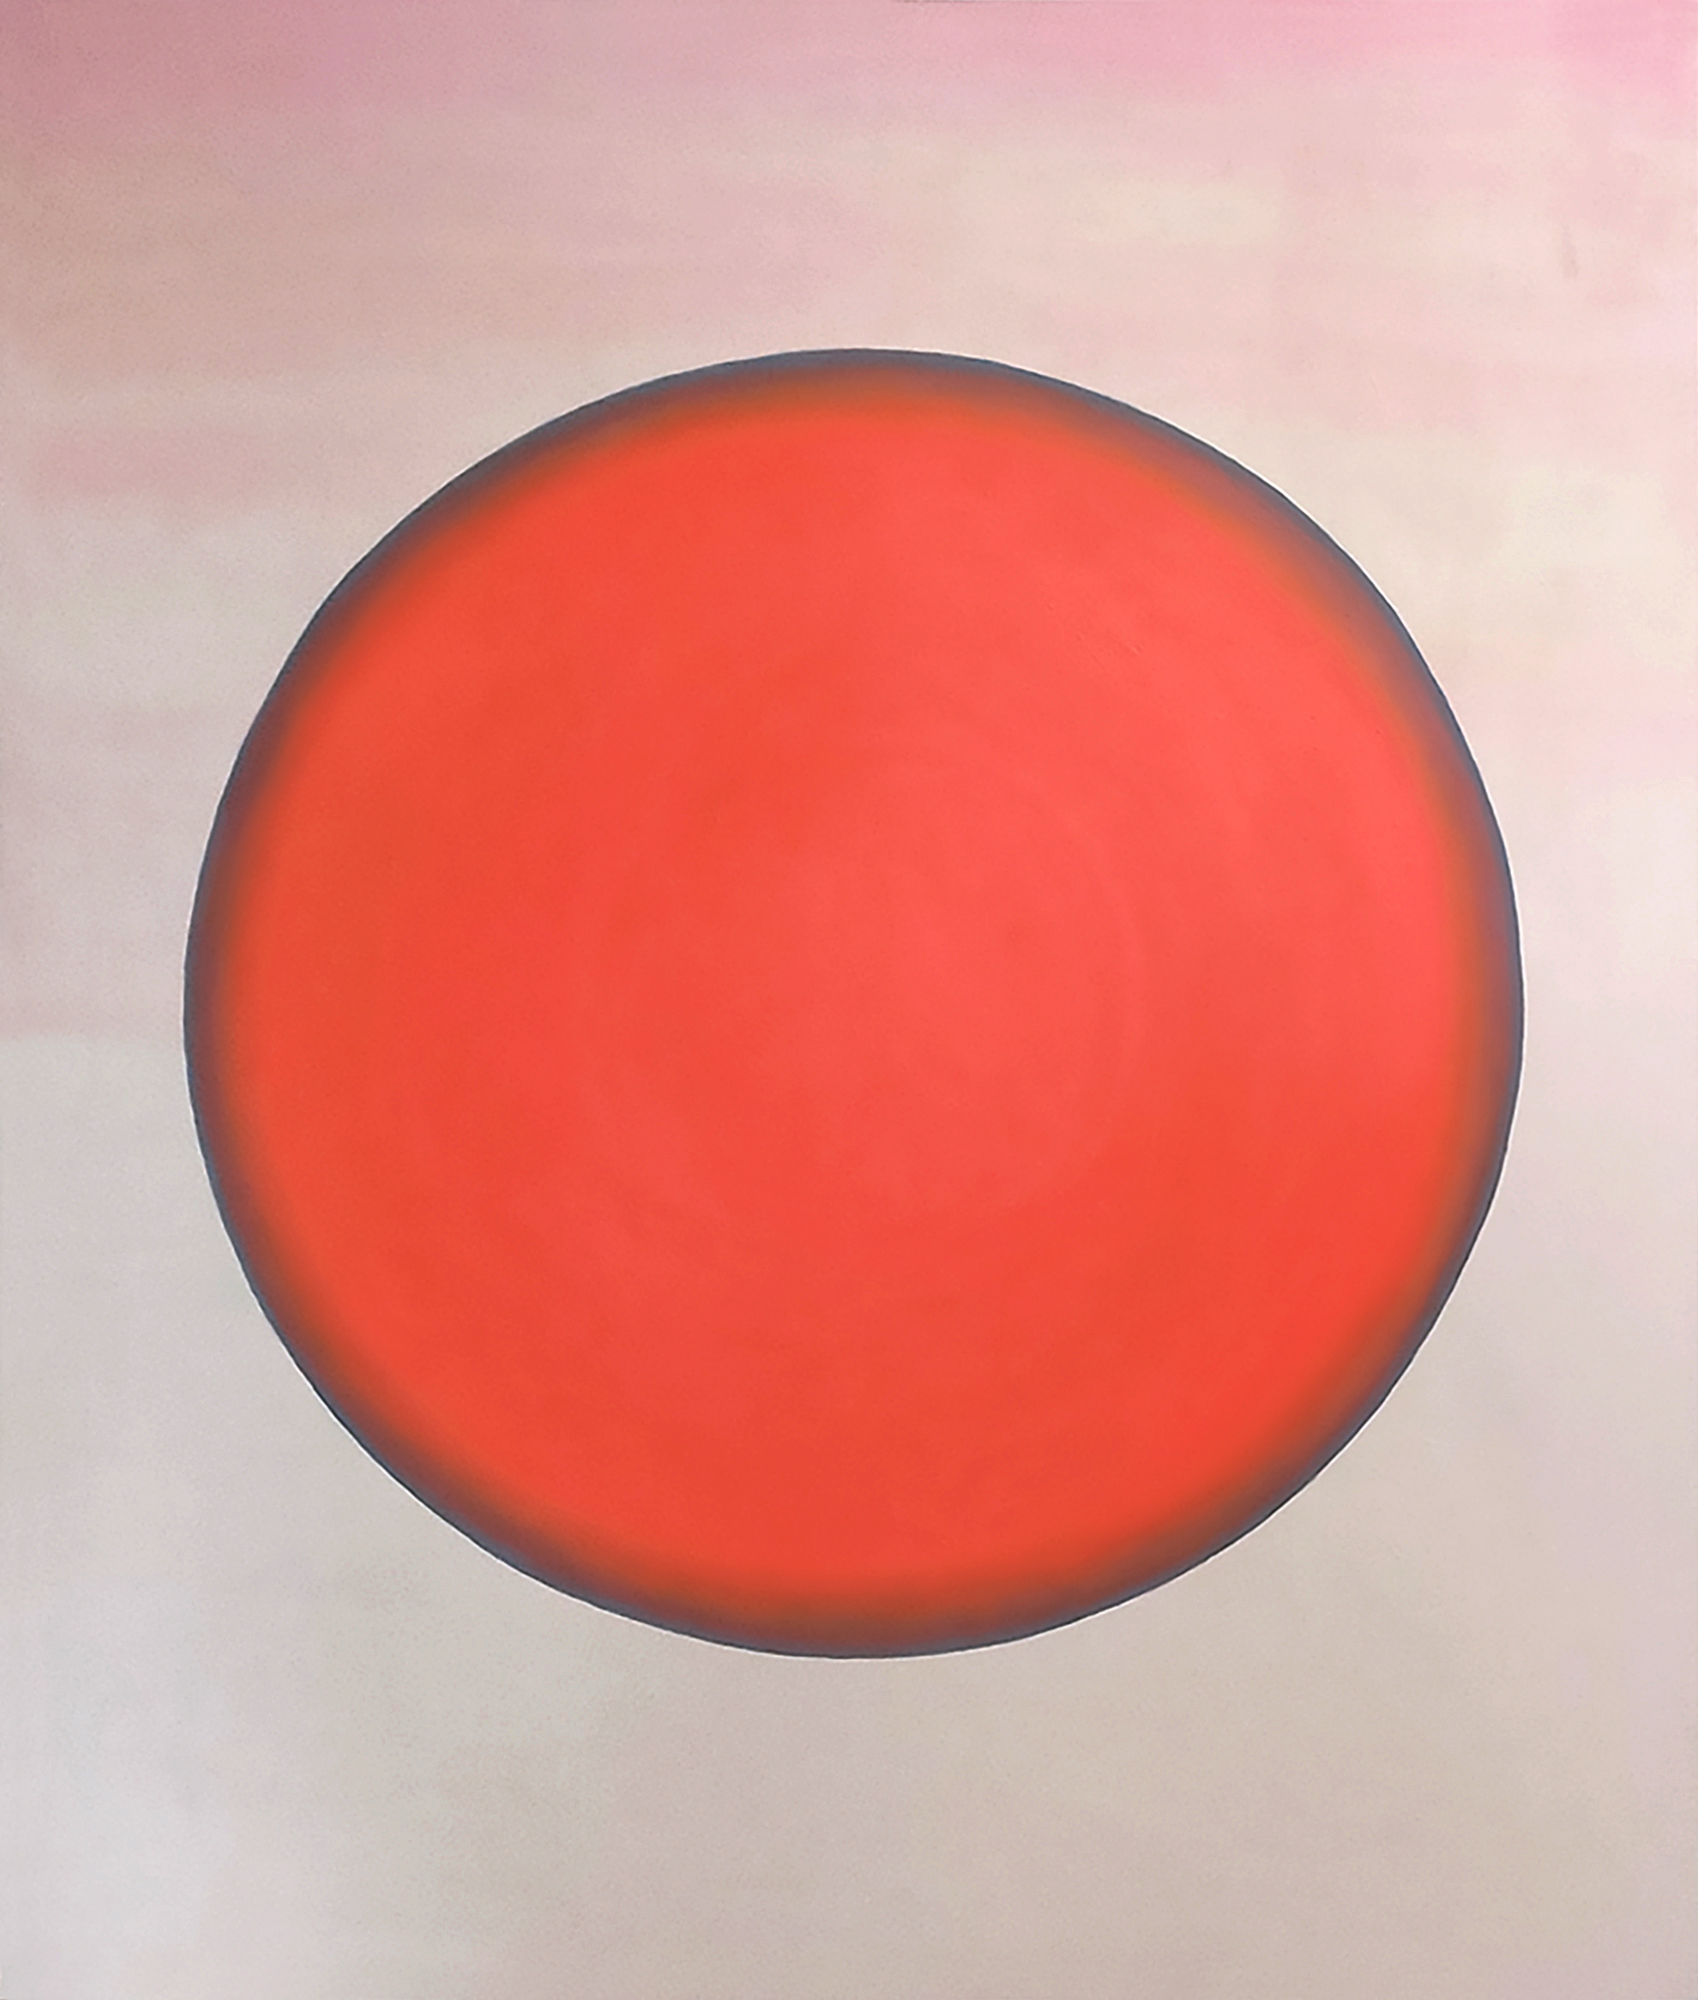 paintings, aesthetic, colorful, geometric, surrealistic, moods, science, sky, orange, pastel, pink, acrylic, cotton-canvas, abstract-forms, atmosphere, beautiful, contemporary-art, copenhagen, modern, modern-art, nordic, outer-space, scandinavien, symbolic, symmetry, tranquil, vibrant, Buy original high quality art. Paintings, drawings, limited edition prints & posters by talented artists.